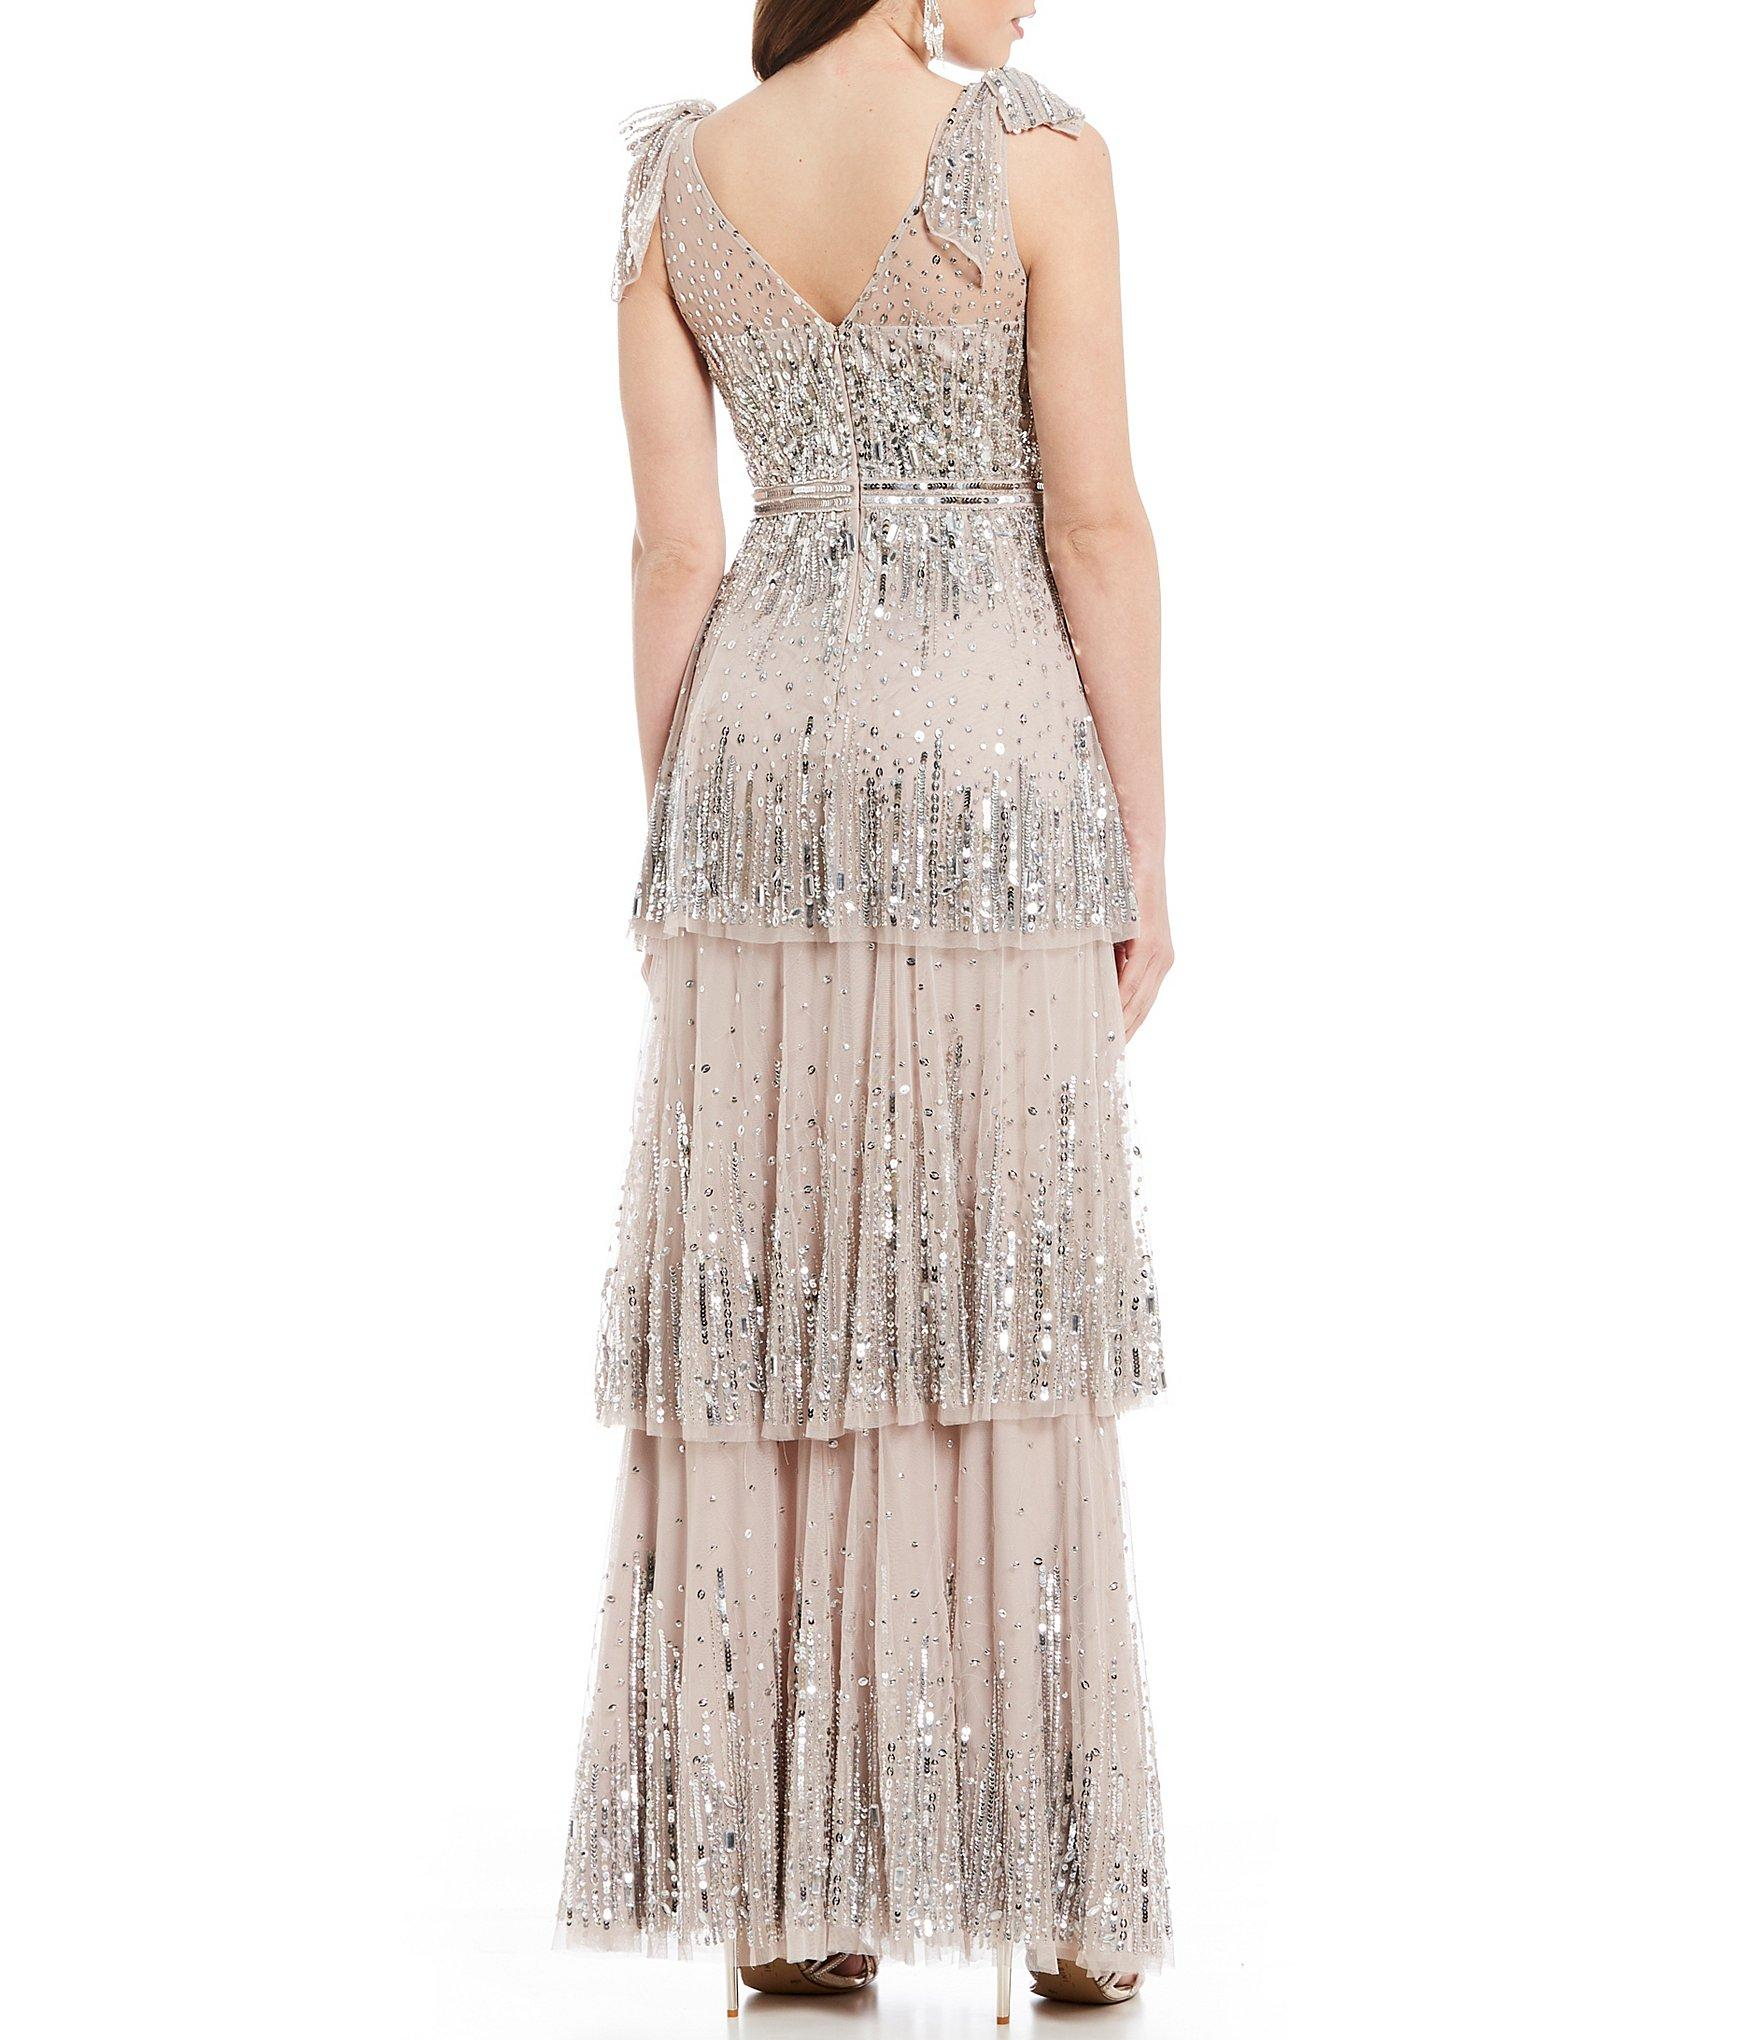 81b366933d5 Gianni Bini - Multicolor Skyler Illusion Mesh Tiered Sequin Bow Detail Gown  - Lyst. View fullscreen